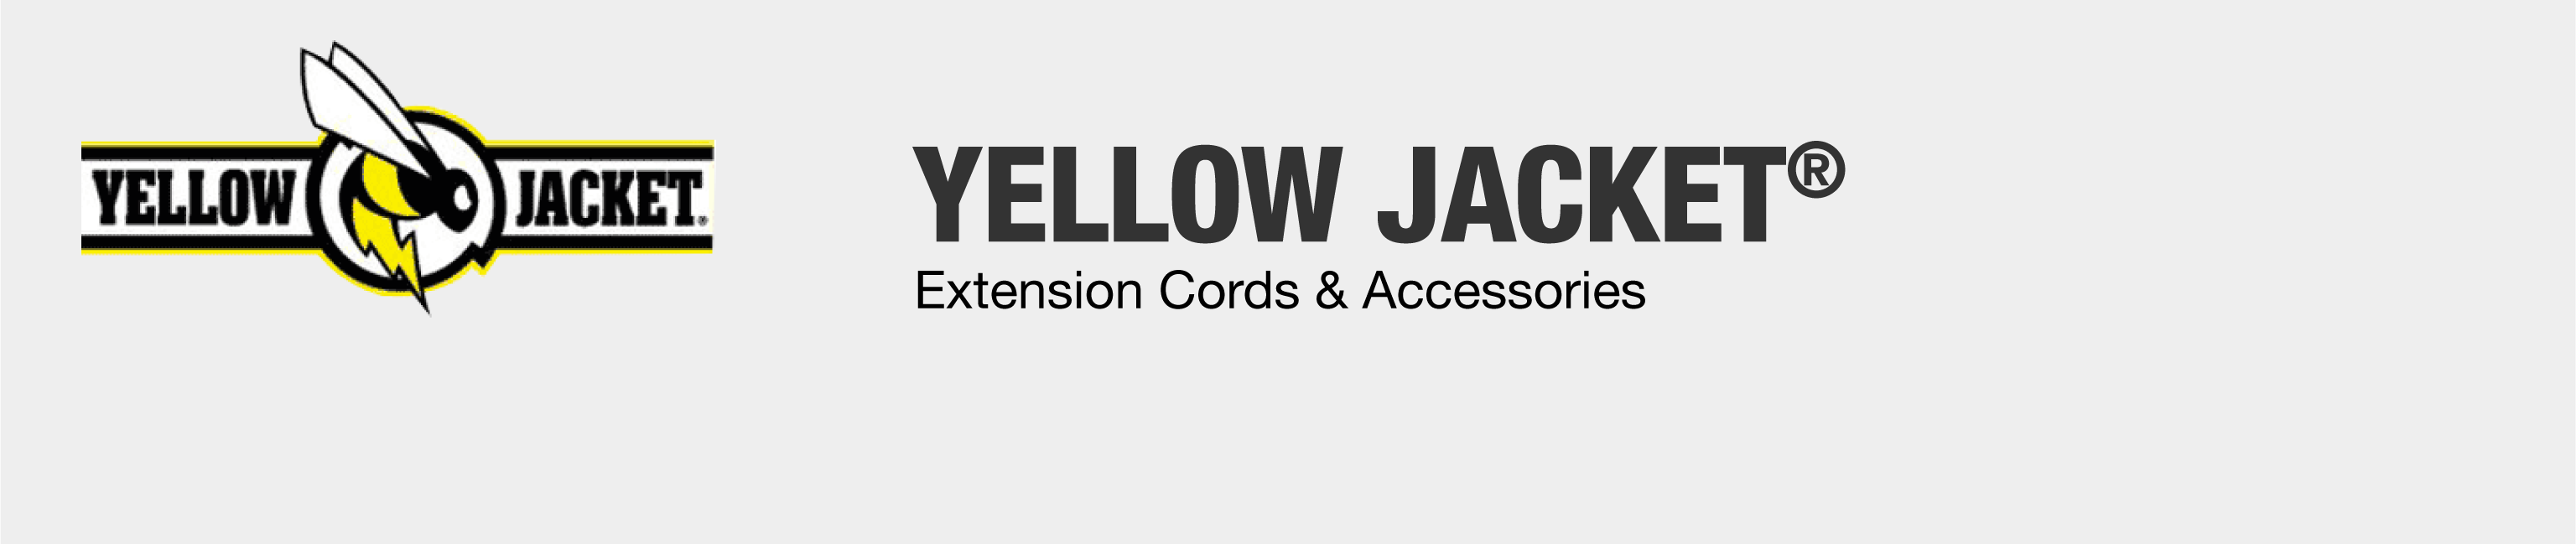 Yellow Jacket extension cords & accessories